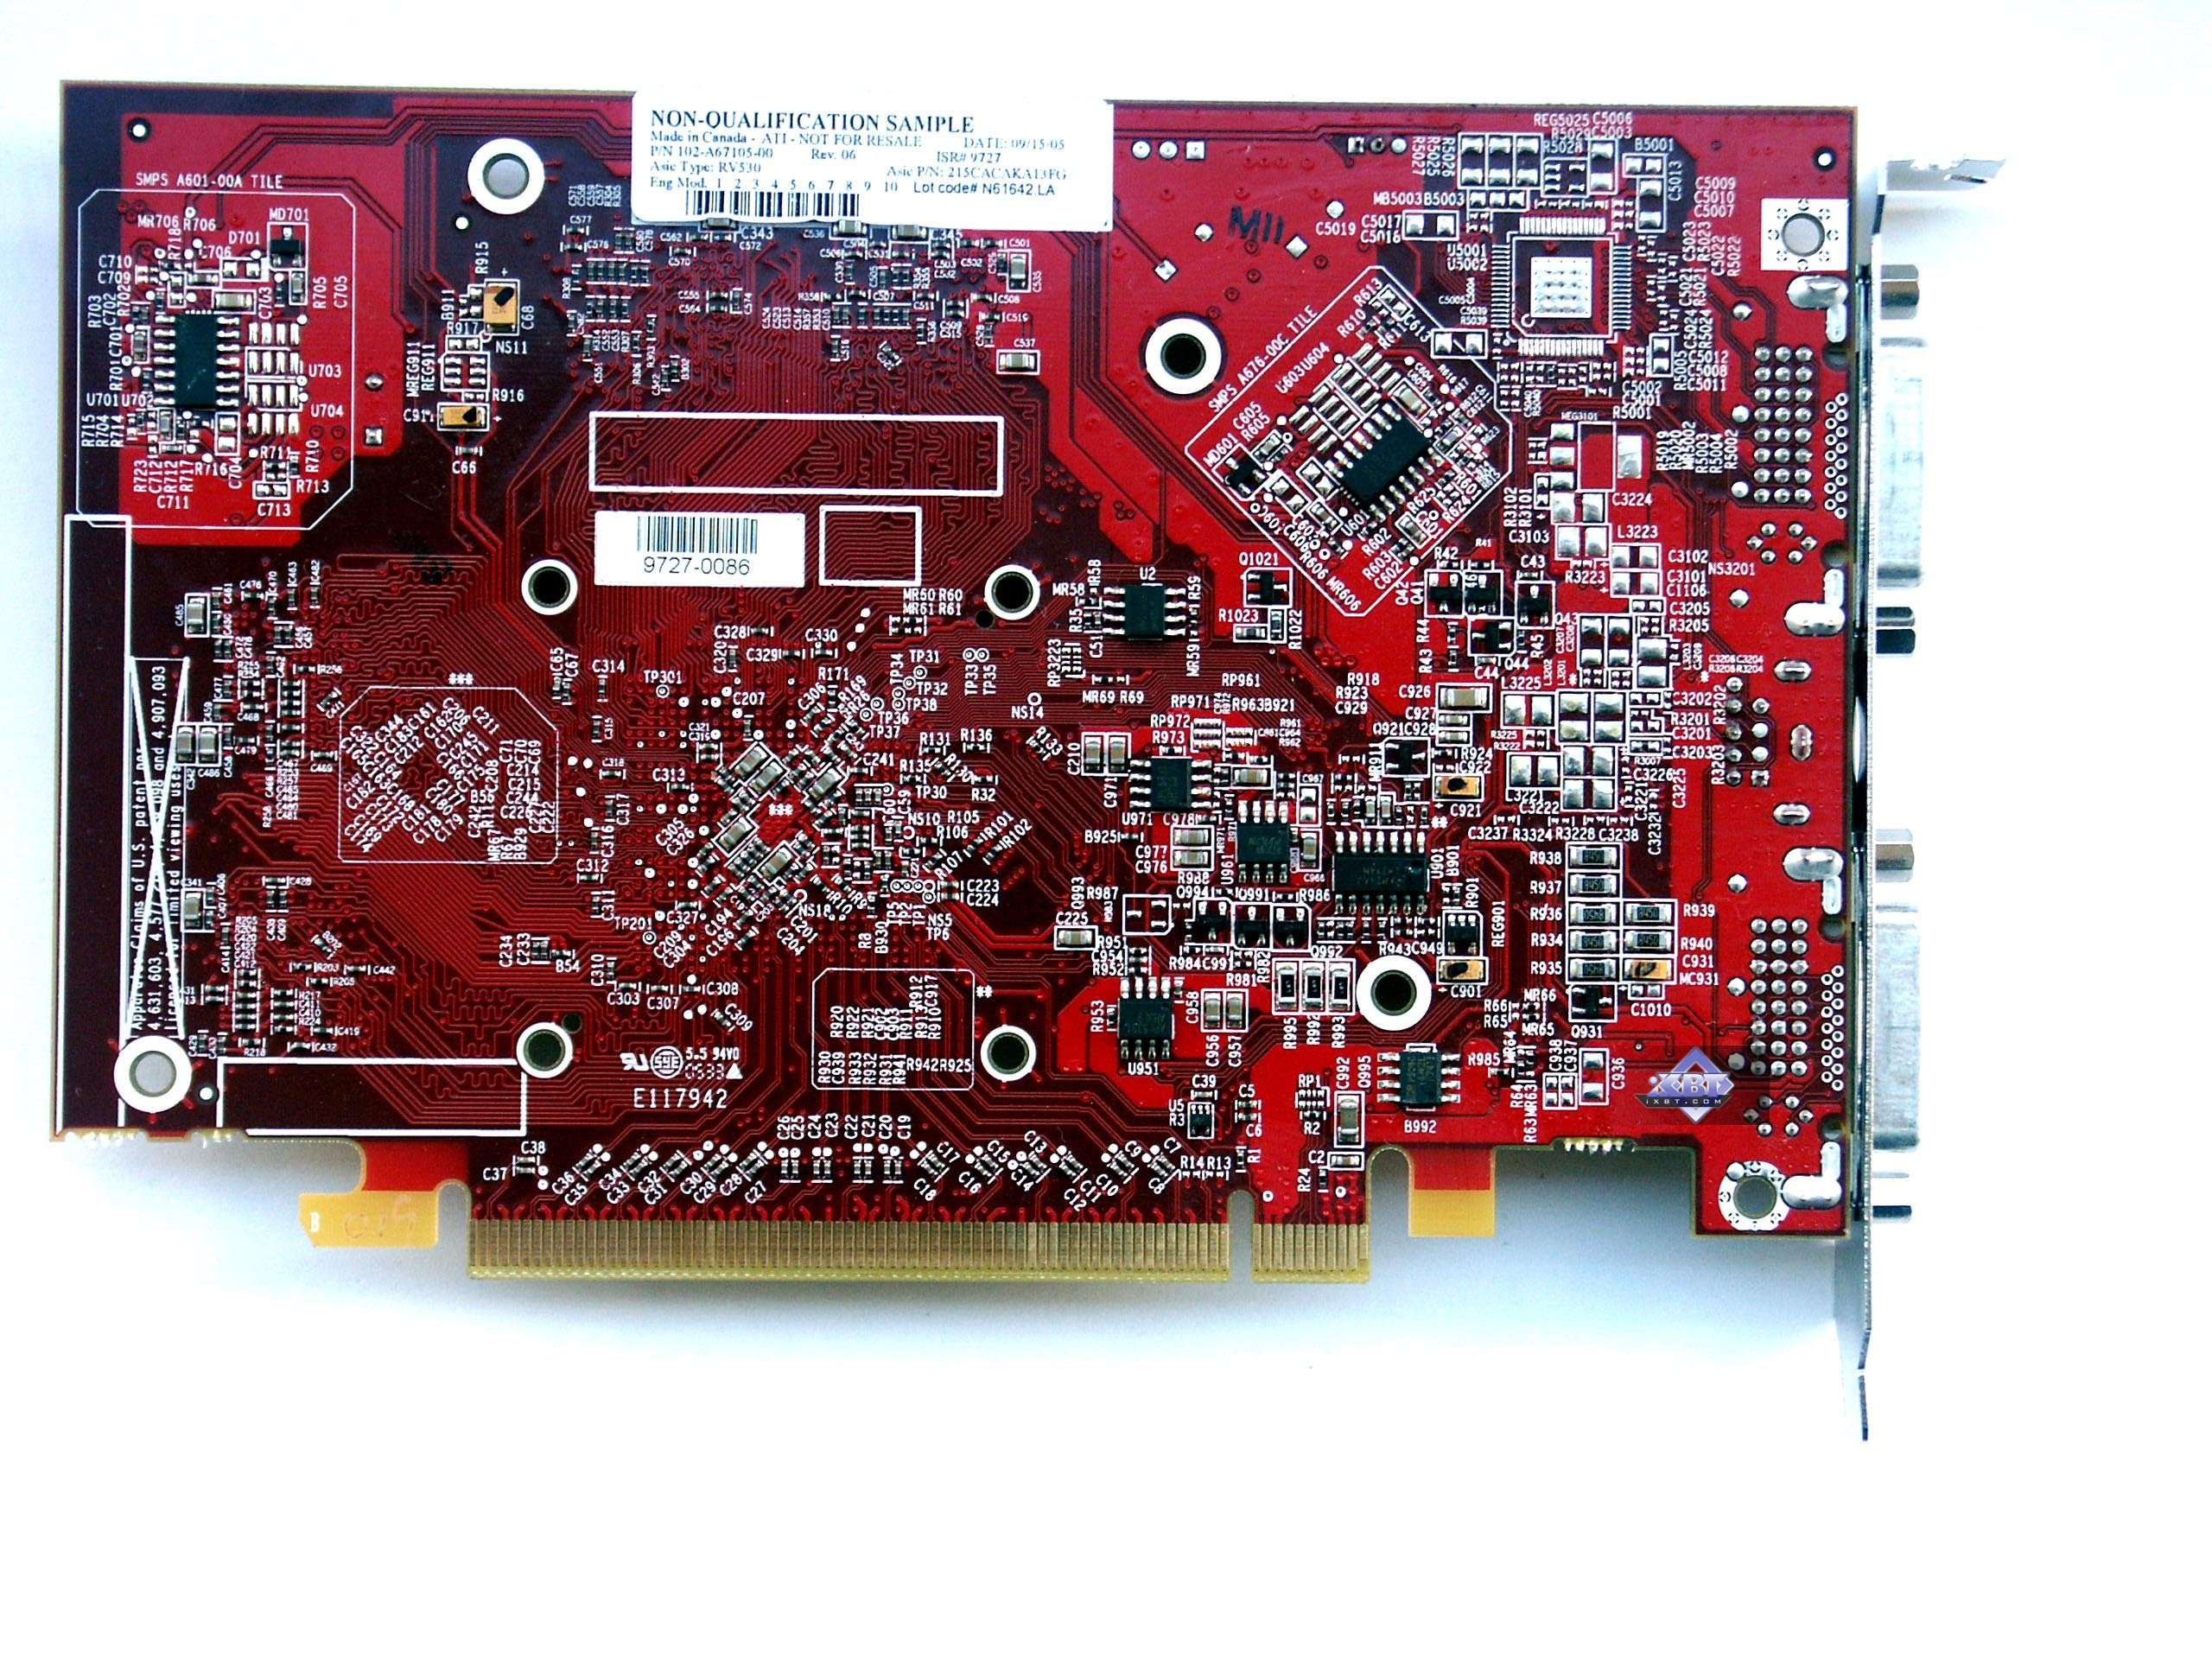 ATI RADEON X1950 SERIES - SECONDARY DRIVER FOR WINDOWS